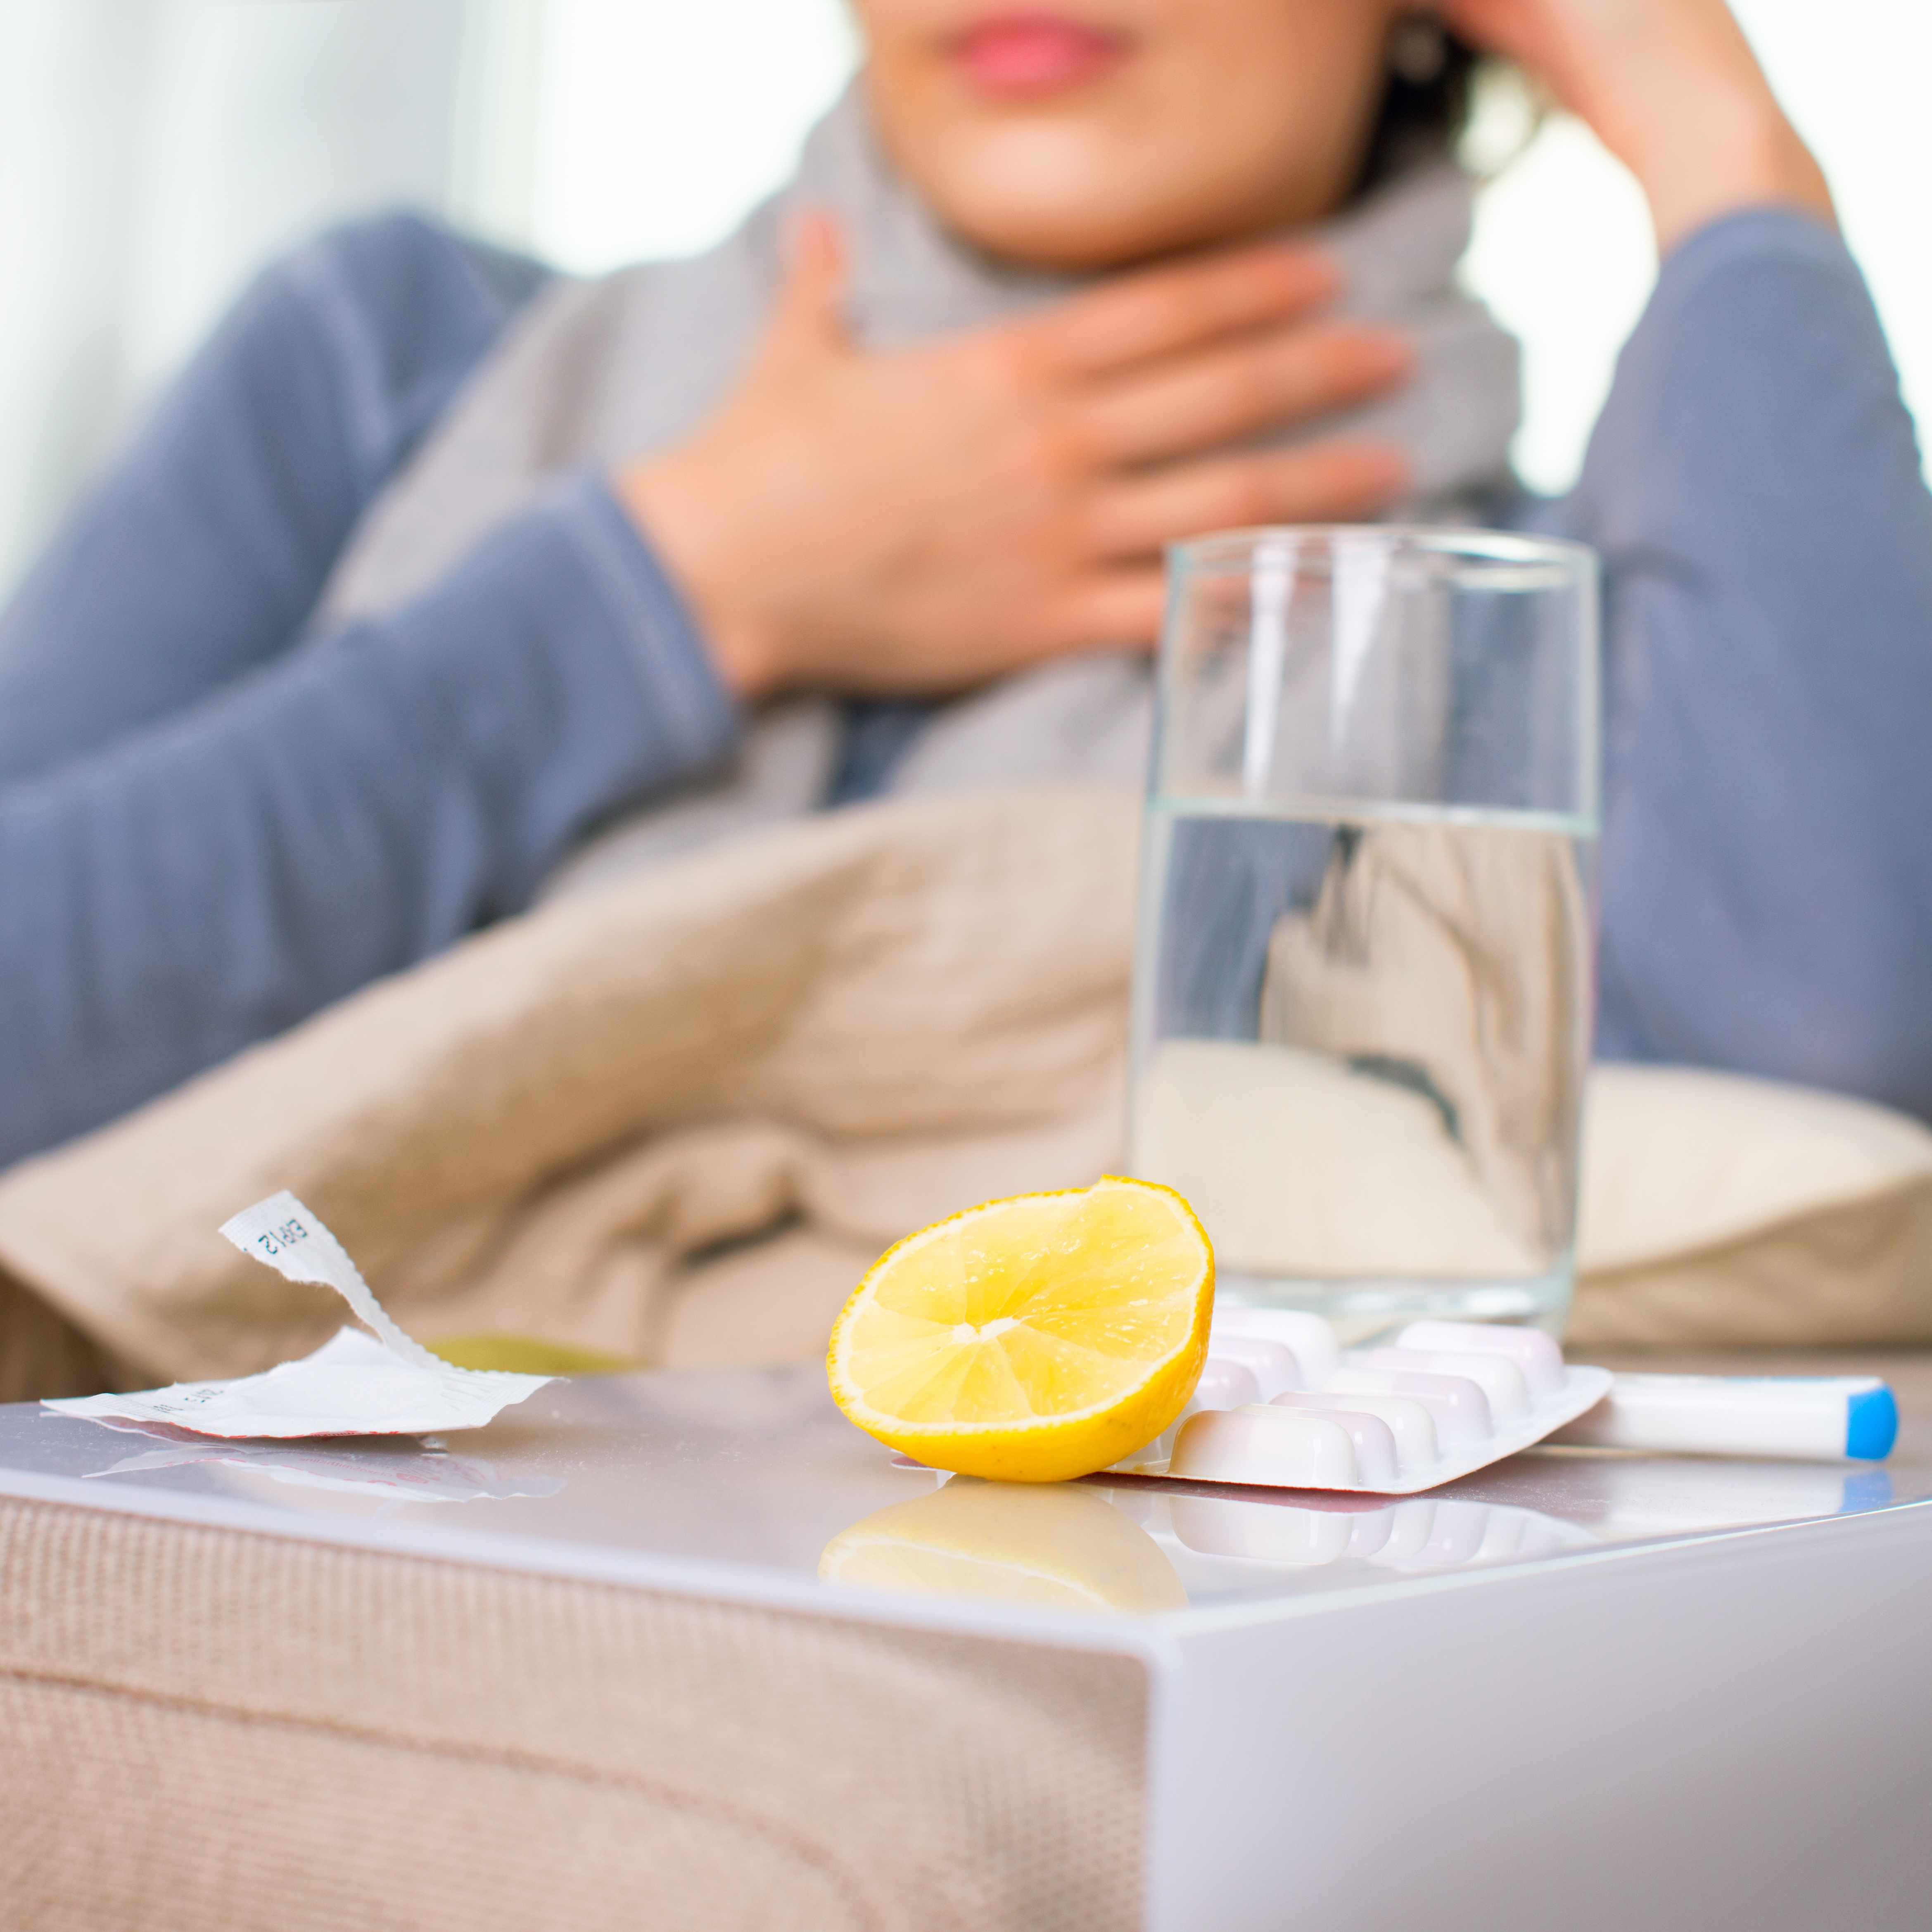 a woman sitting on a couch, with a scarf around her neck and her hand to her throat, with a glass of water, a lemon, and some medication on a table in the foreground